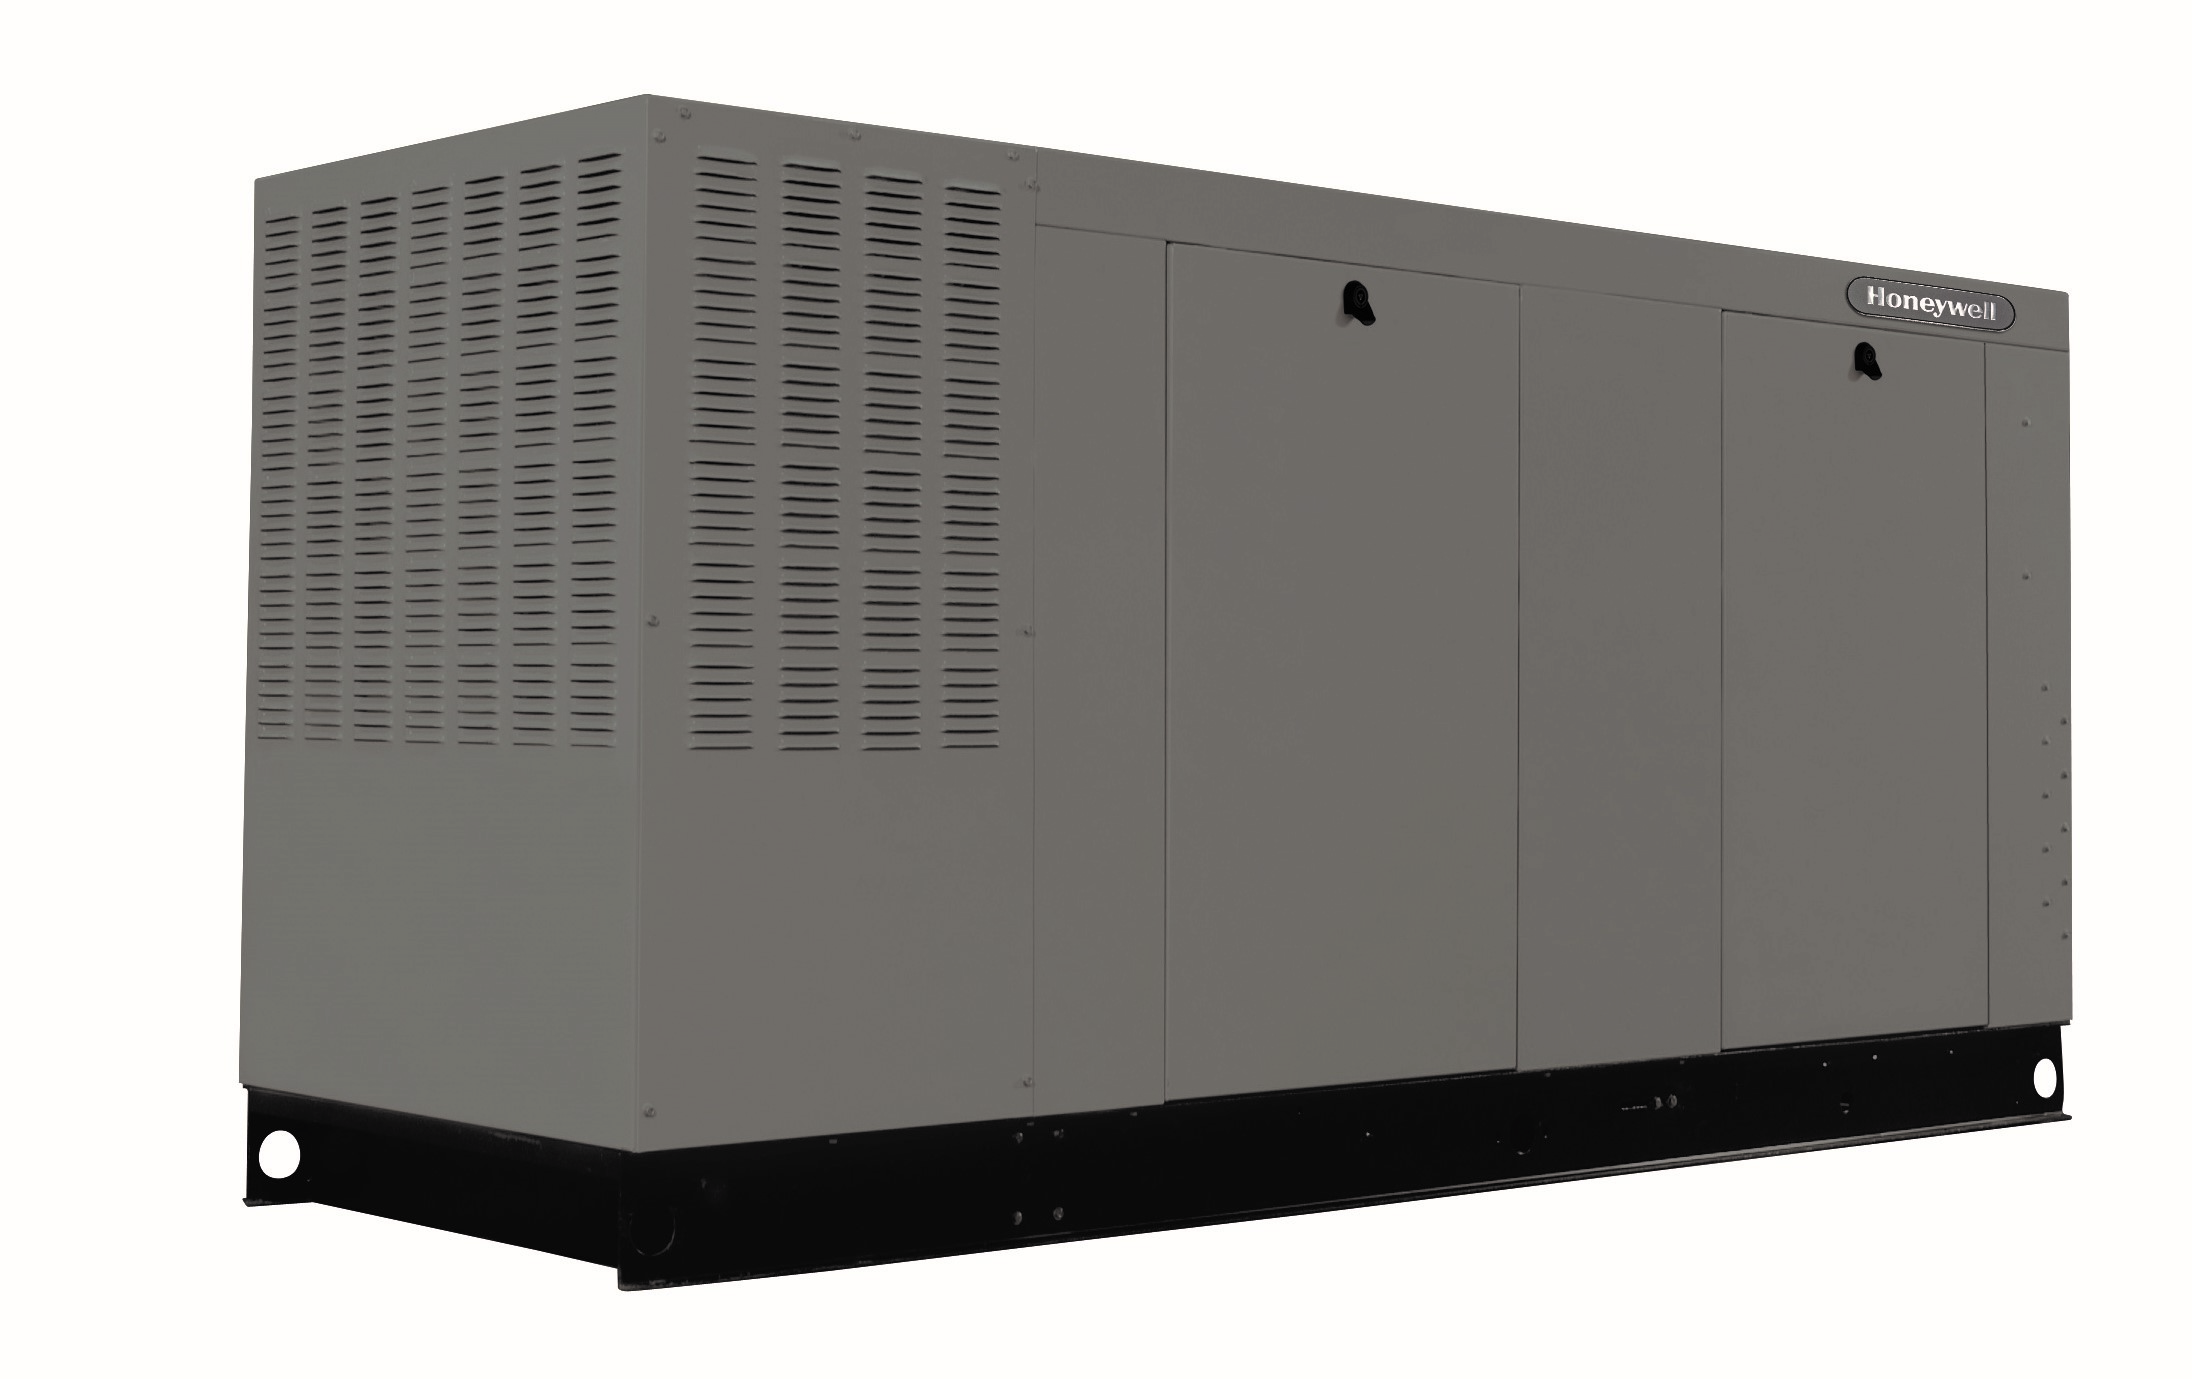 Honeywell 130 kW Commercial Backup Generator